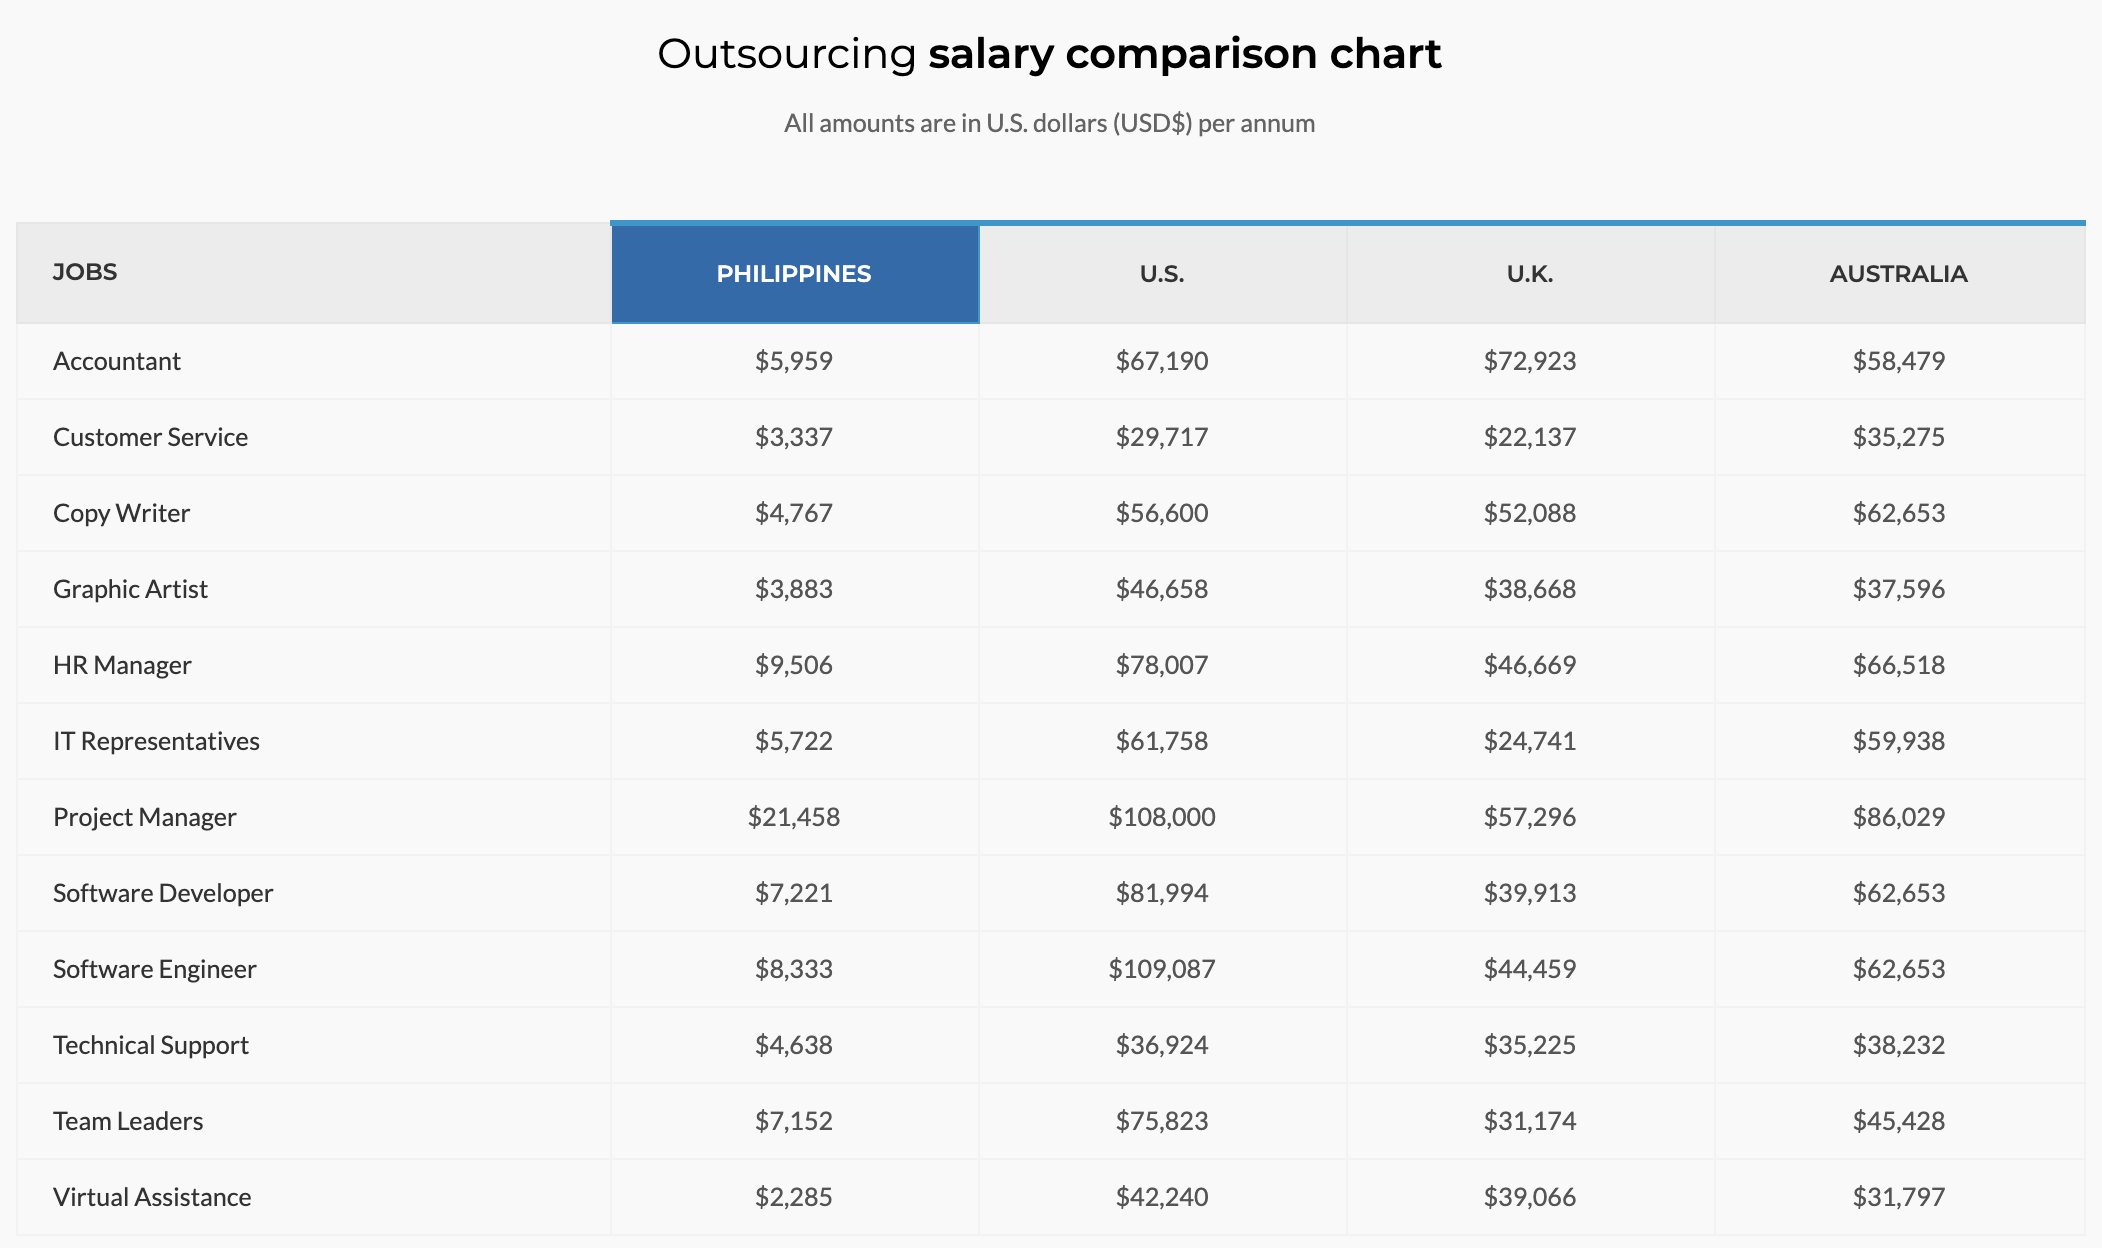 Outsource Accelerator salary comparison chart